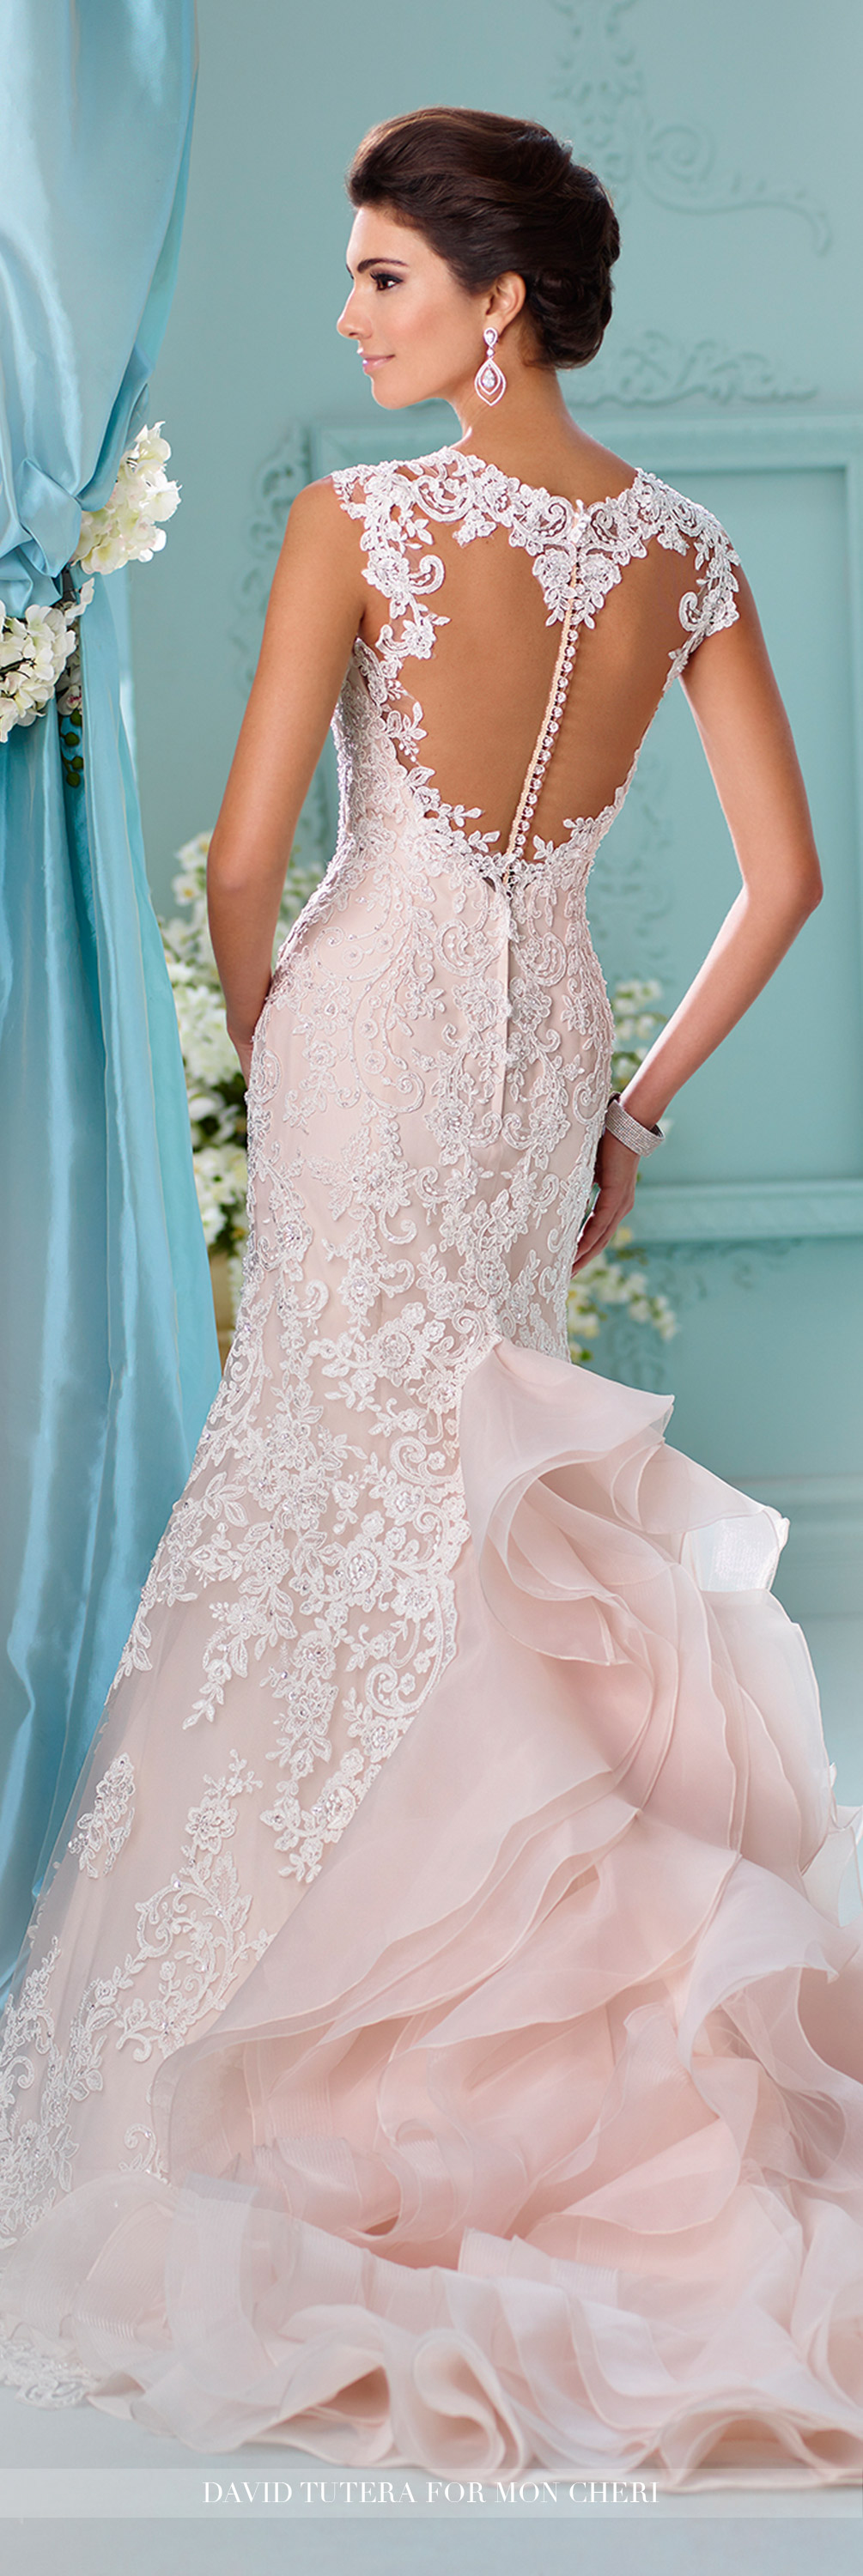 Wedding dresses u spring david tutera lace wedding